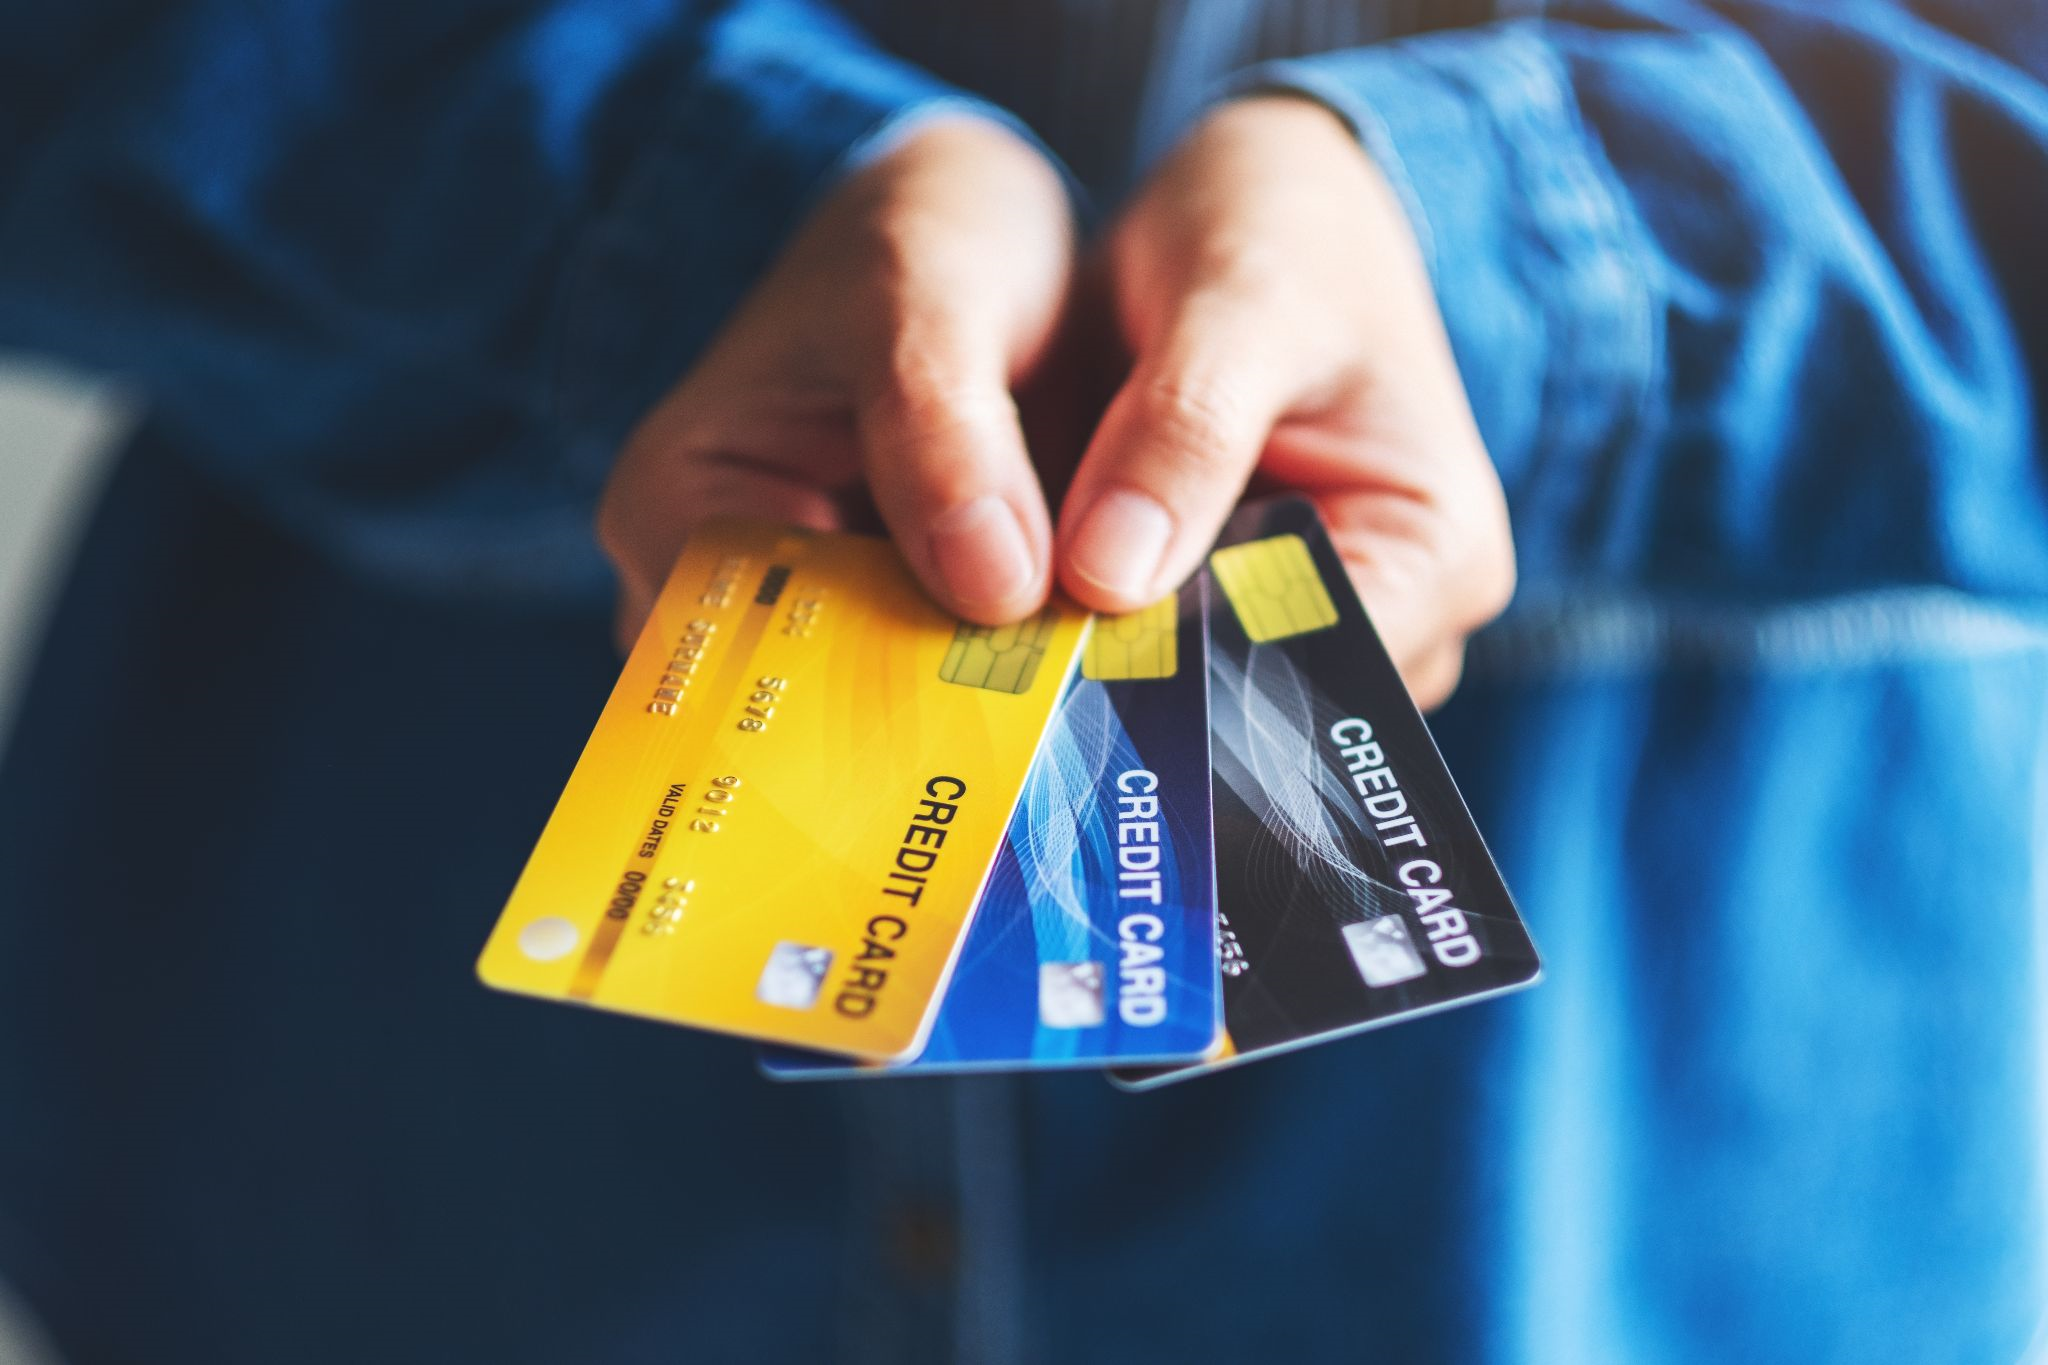 Many holding credit cards